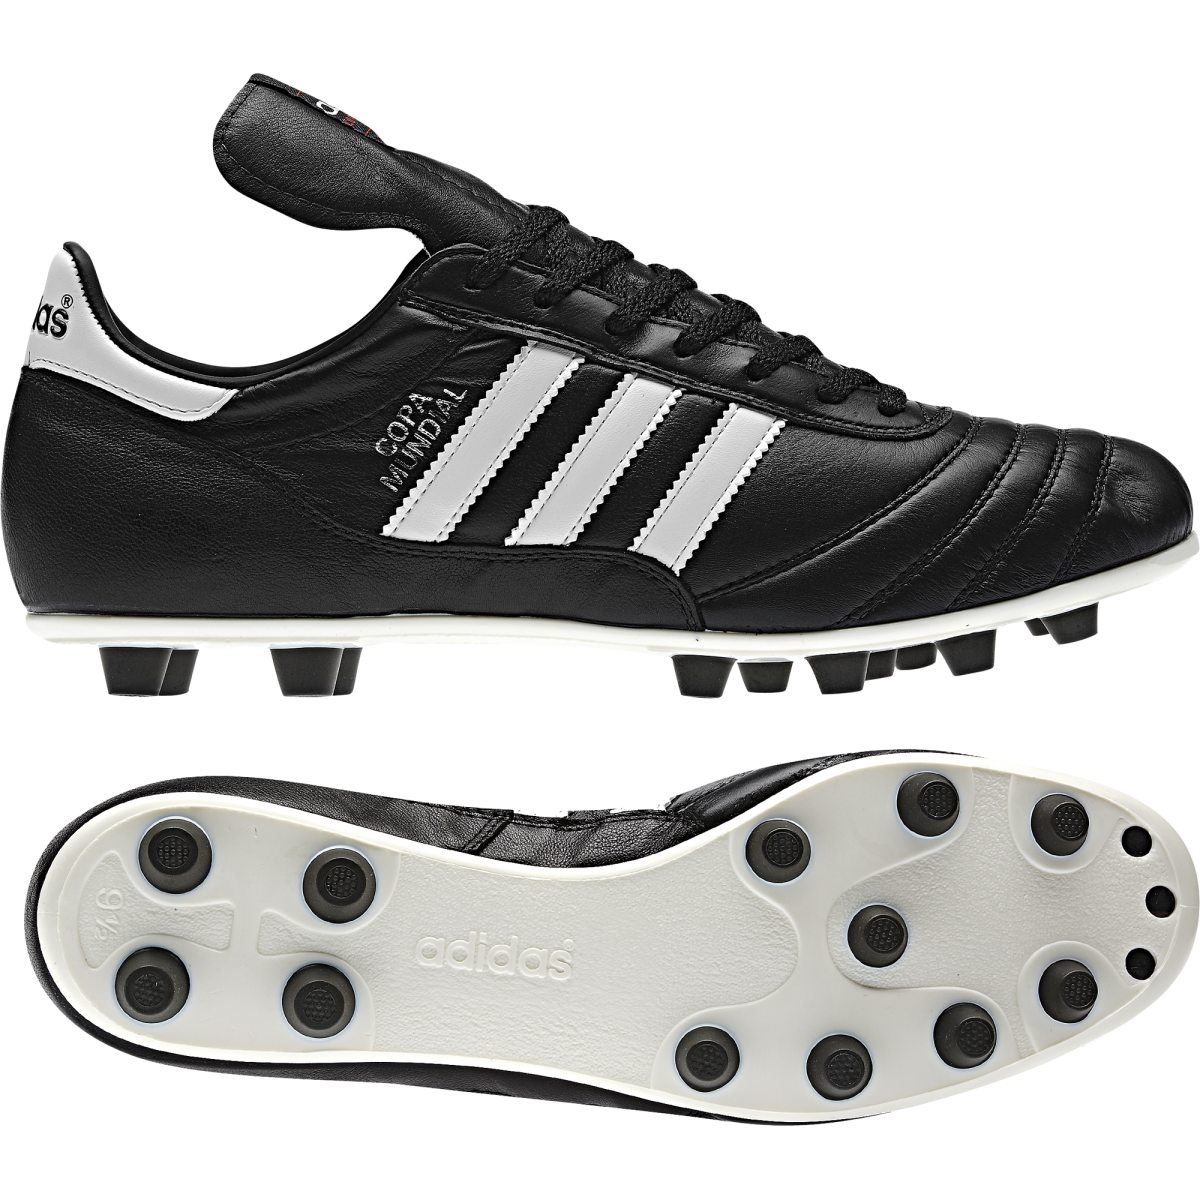 official photos a4523 b6811 ... coupon for adidas copa mundial fotballsko fotballsko xxl 031e5 c3d88